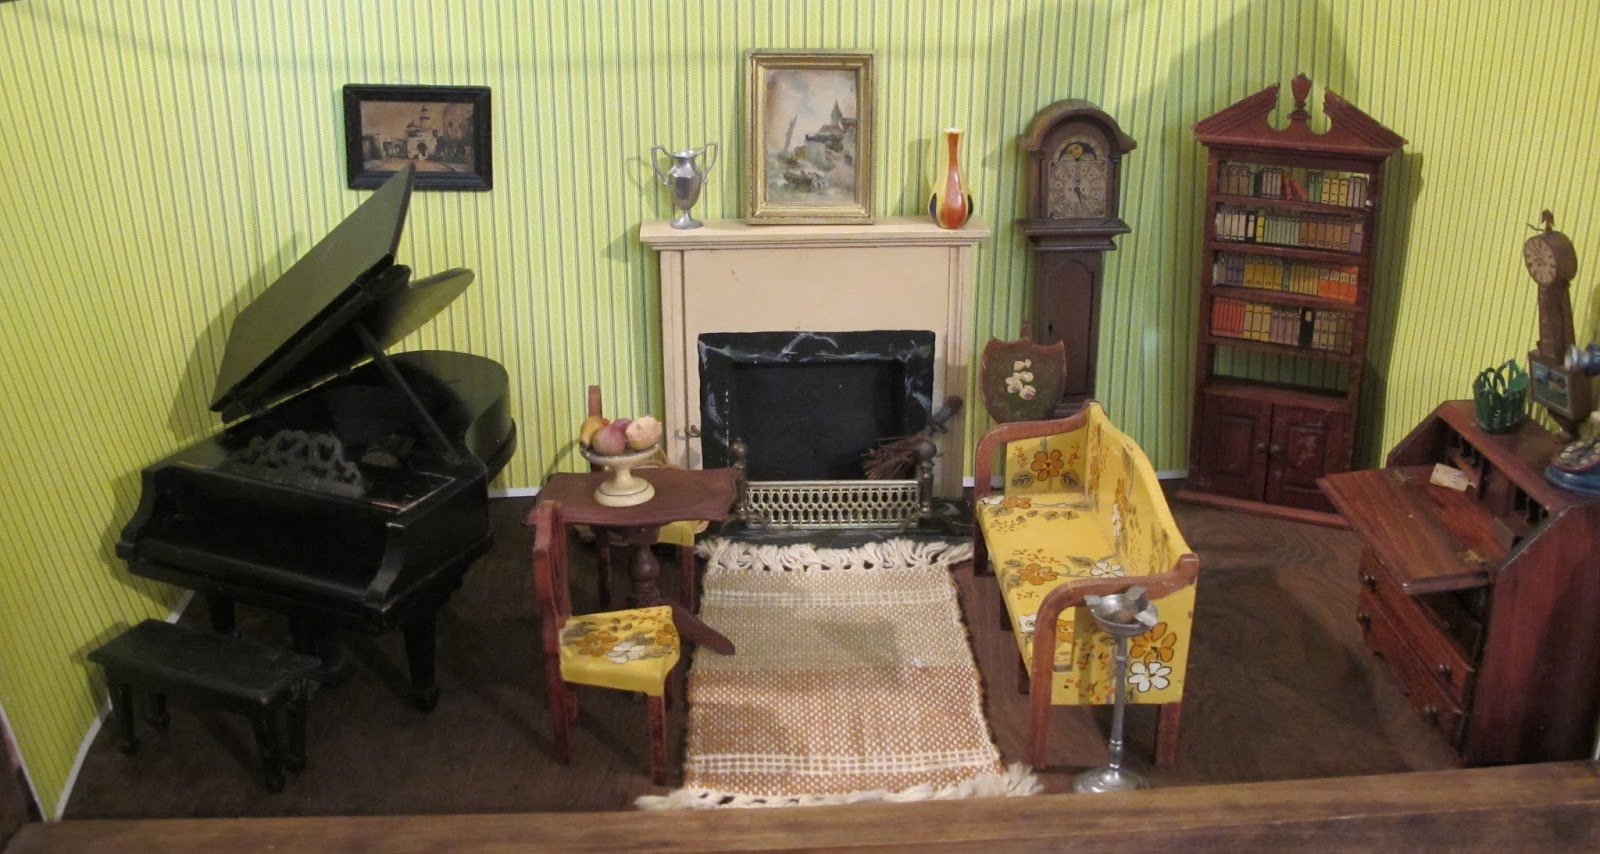 Susan's Mini Homes: Contents of a 1930s dollhouse